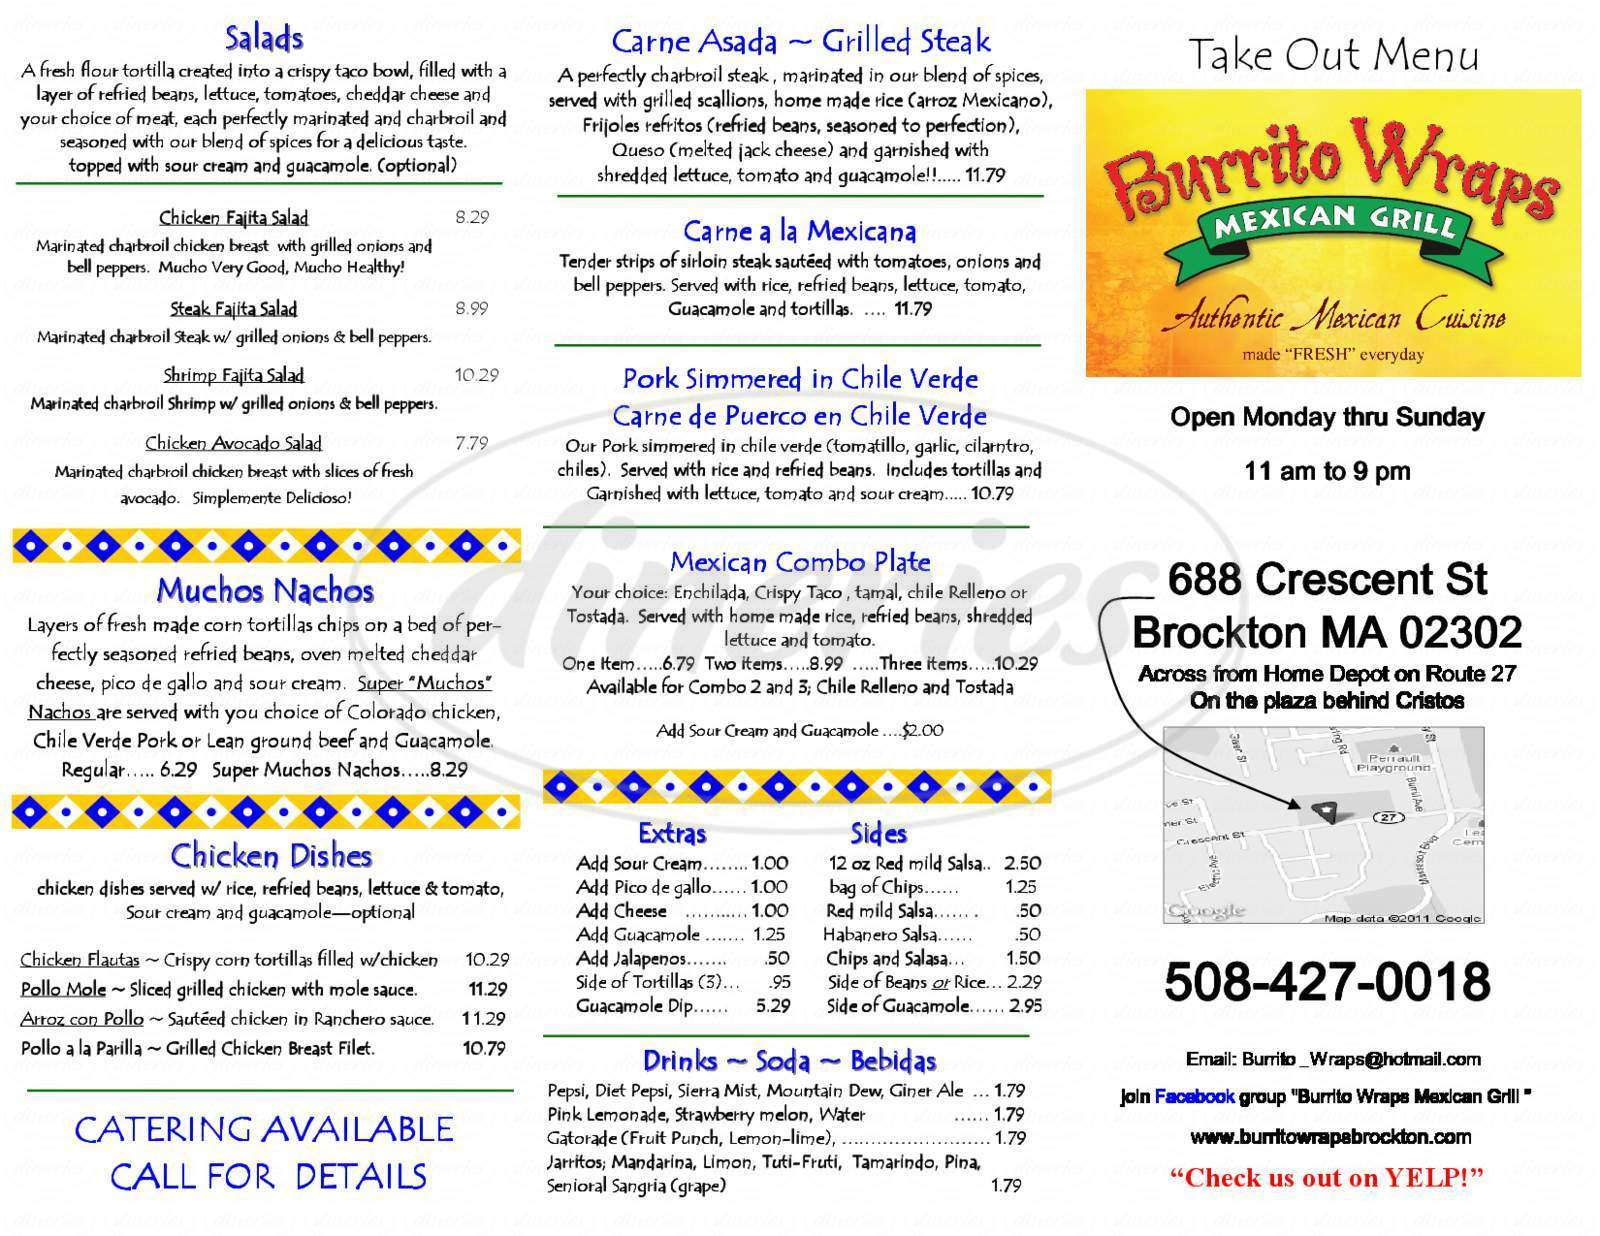 menu for Burrito Wraps Mexican Grill